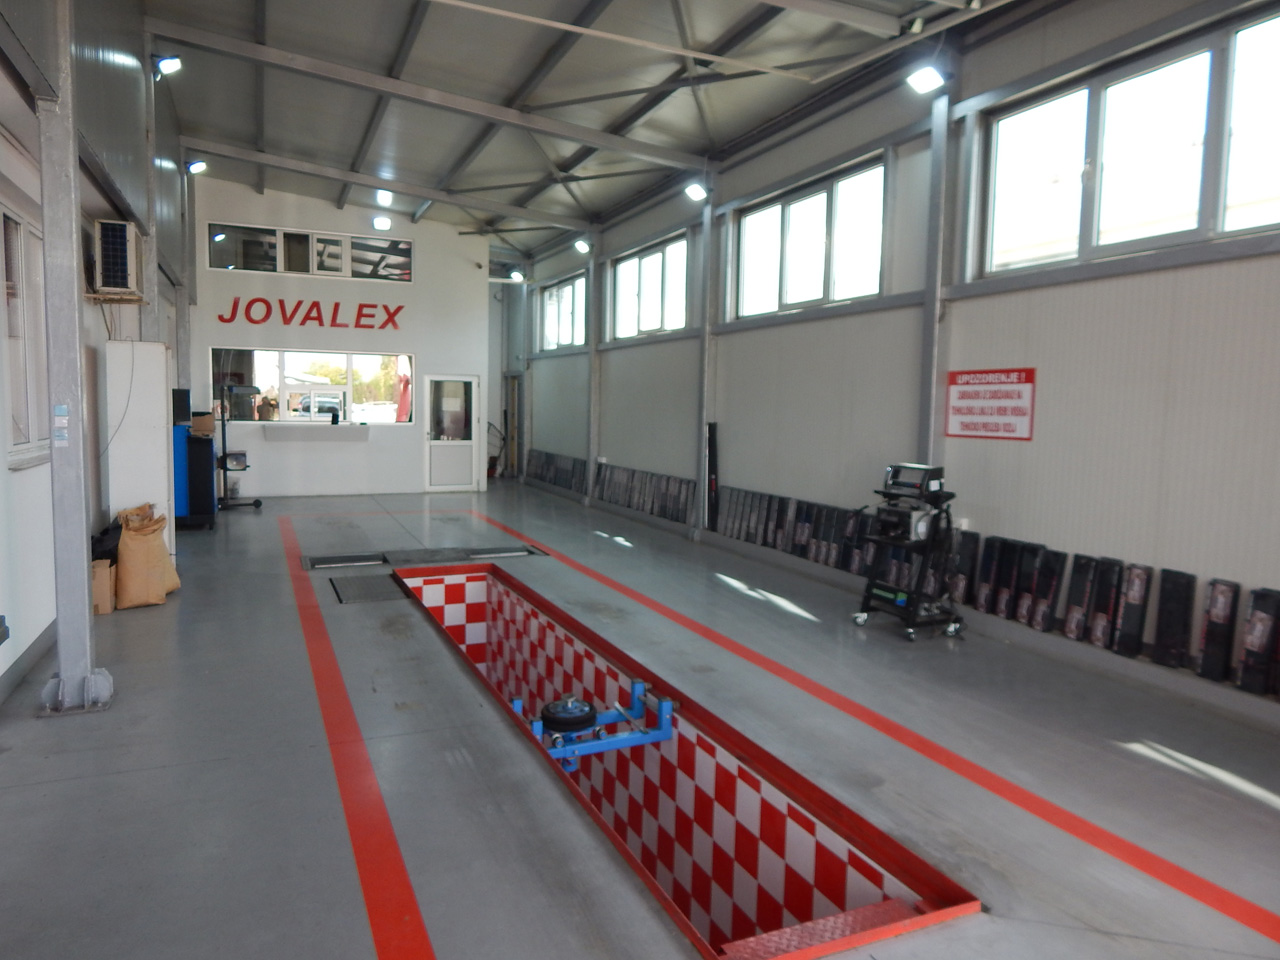 CAR CENTER JOVALEX LTD Second hand car shops Kragujevac - Photo 10